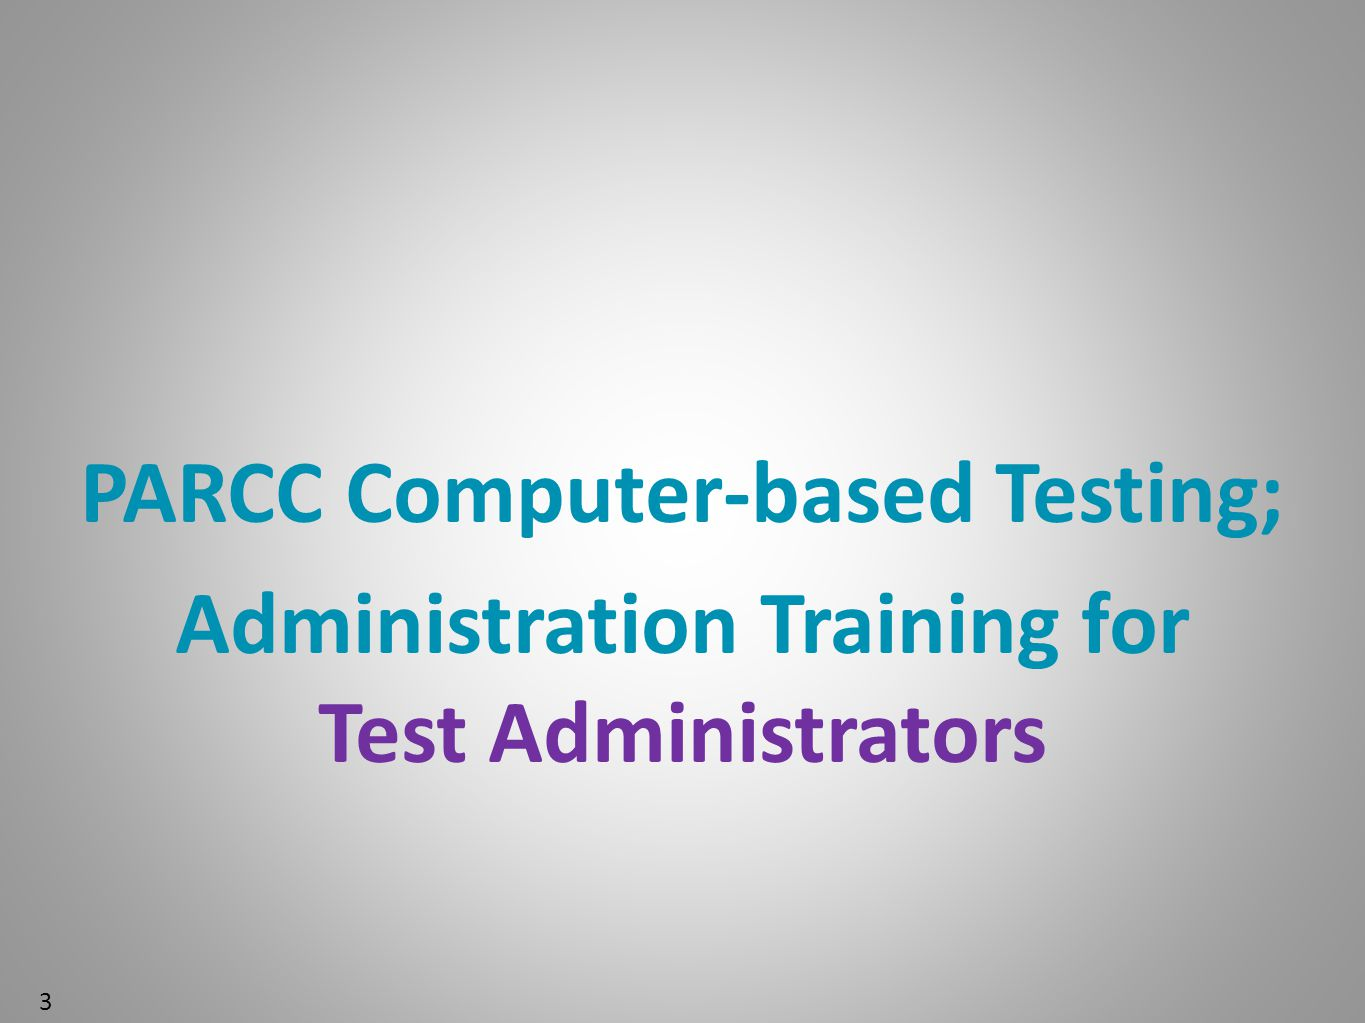 PARCC Computer-based Testing; Administration Training for